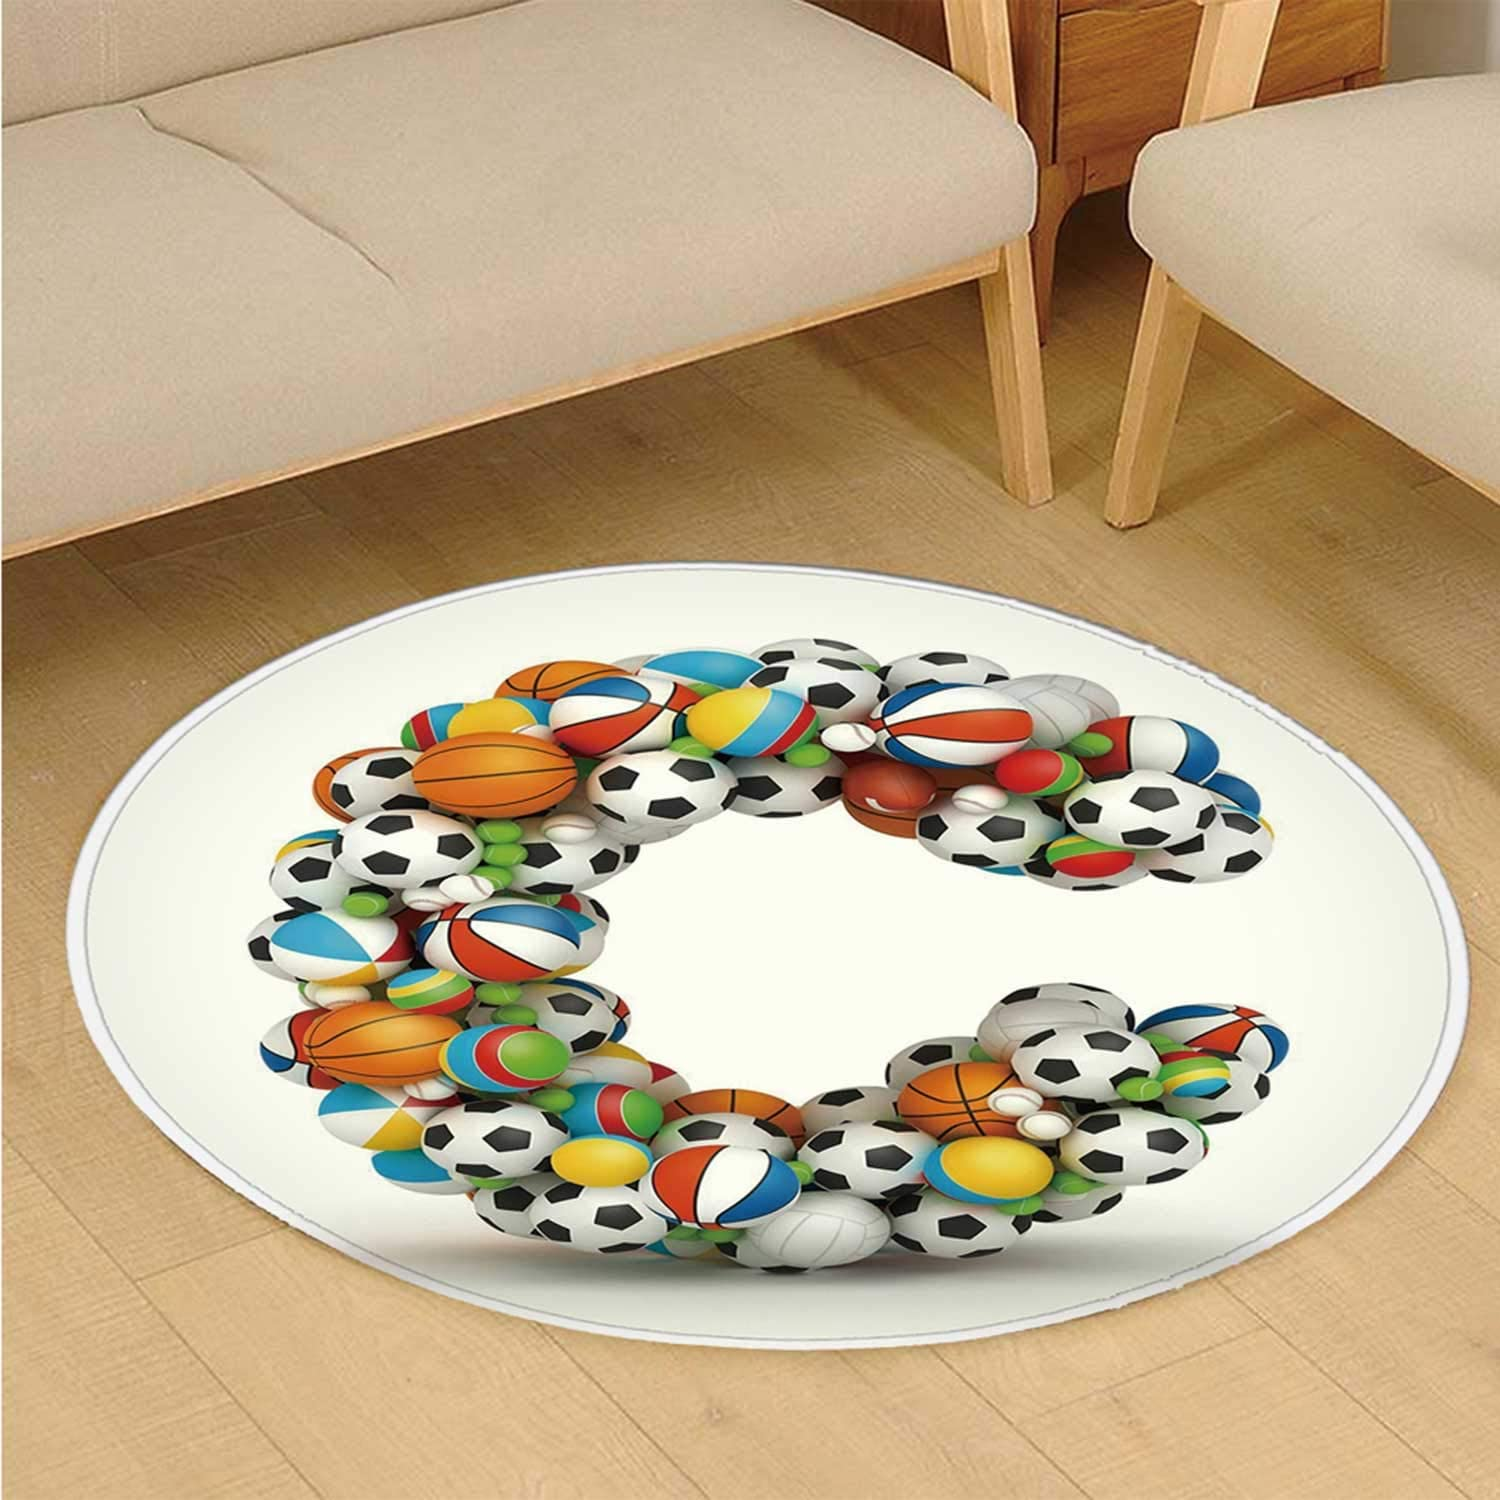 17.71 x 35.43 inch C COABALLA Letter C Comfortable Semicircle Mat,Sporting Goods in The Shape of Letter C Fun Activity Competitive Plays Equipment for Door,45 x 90cm